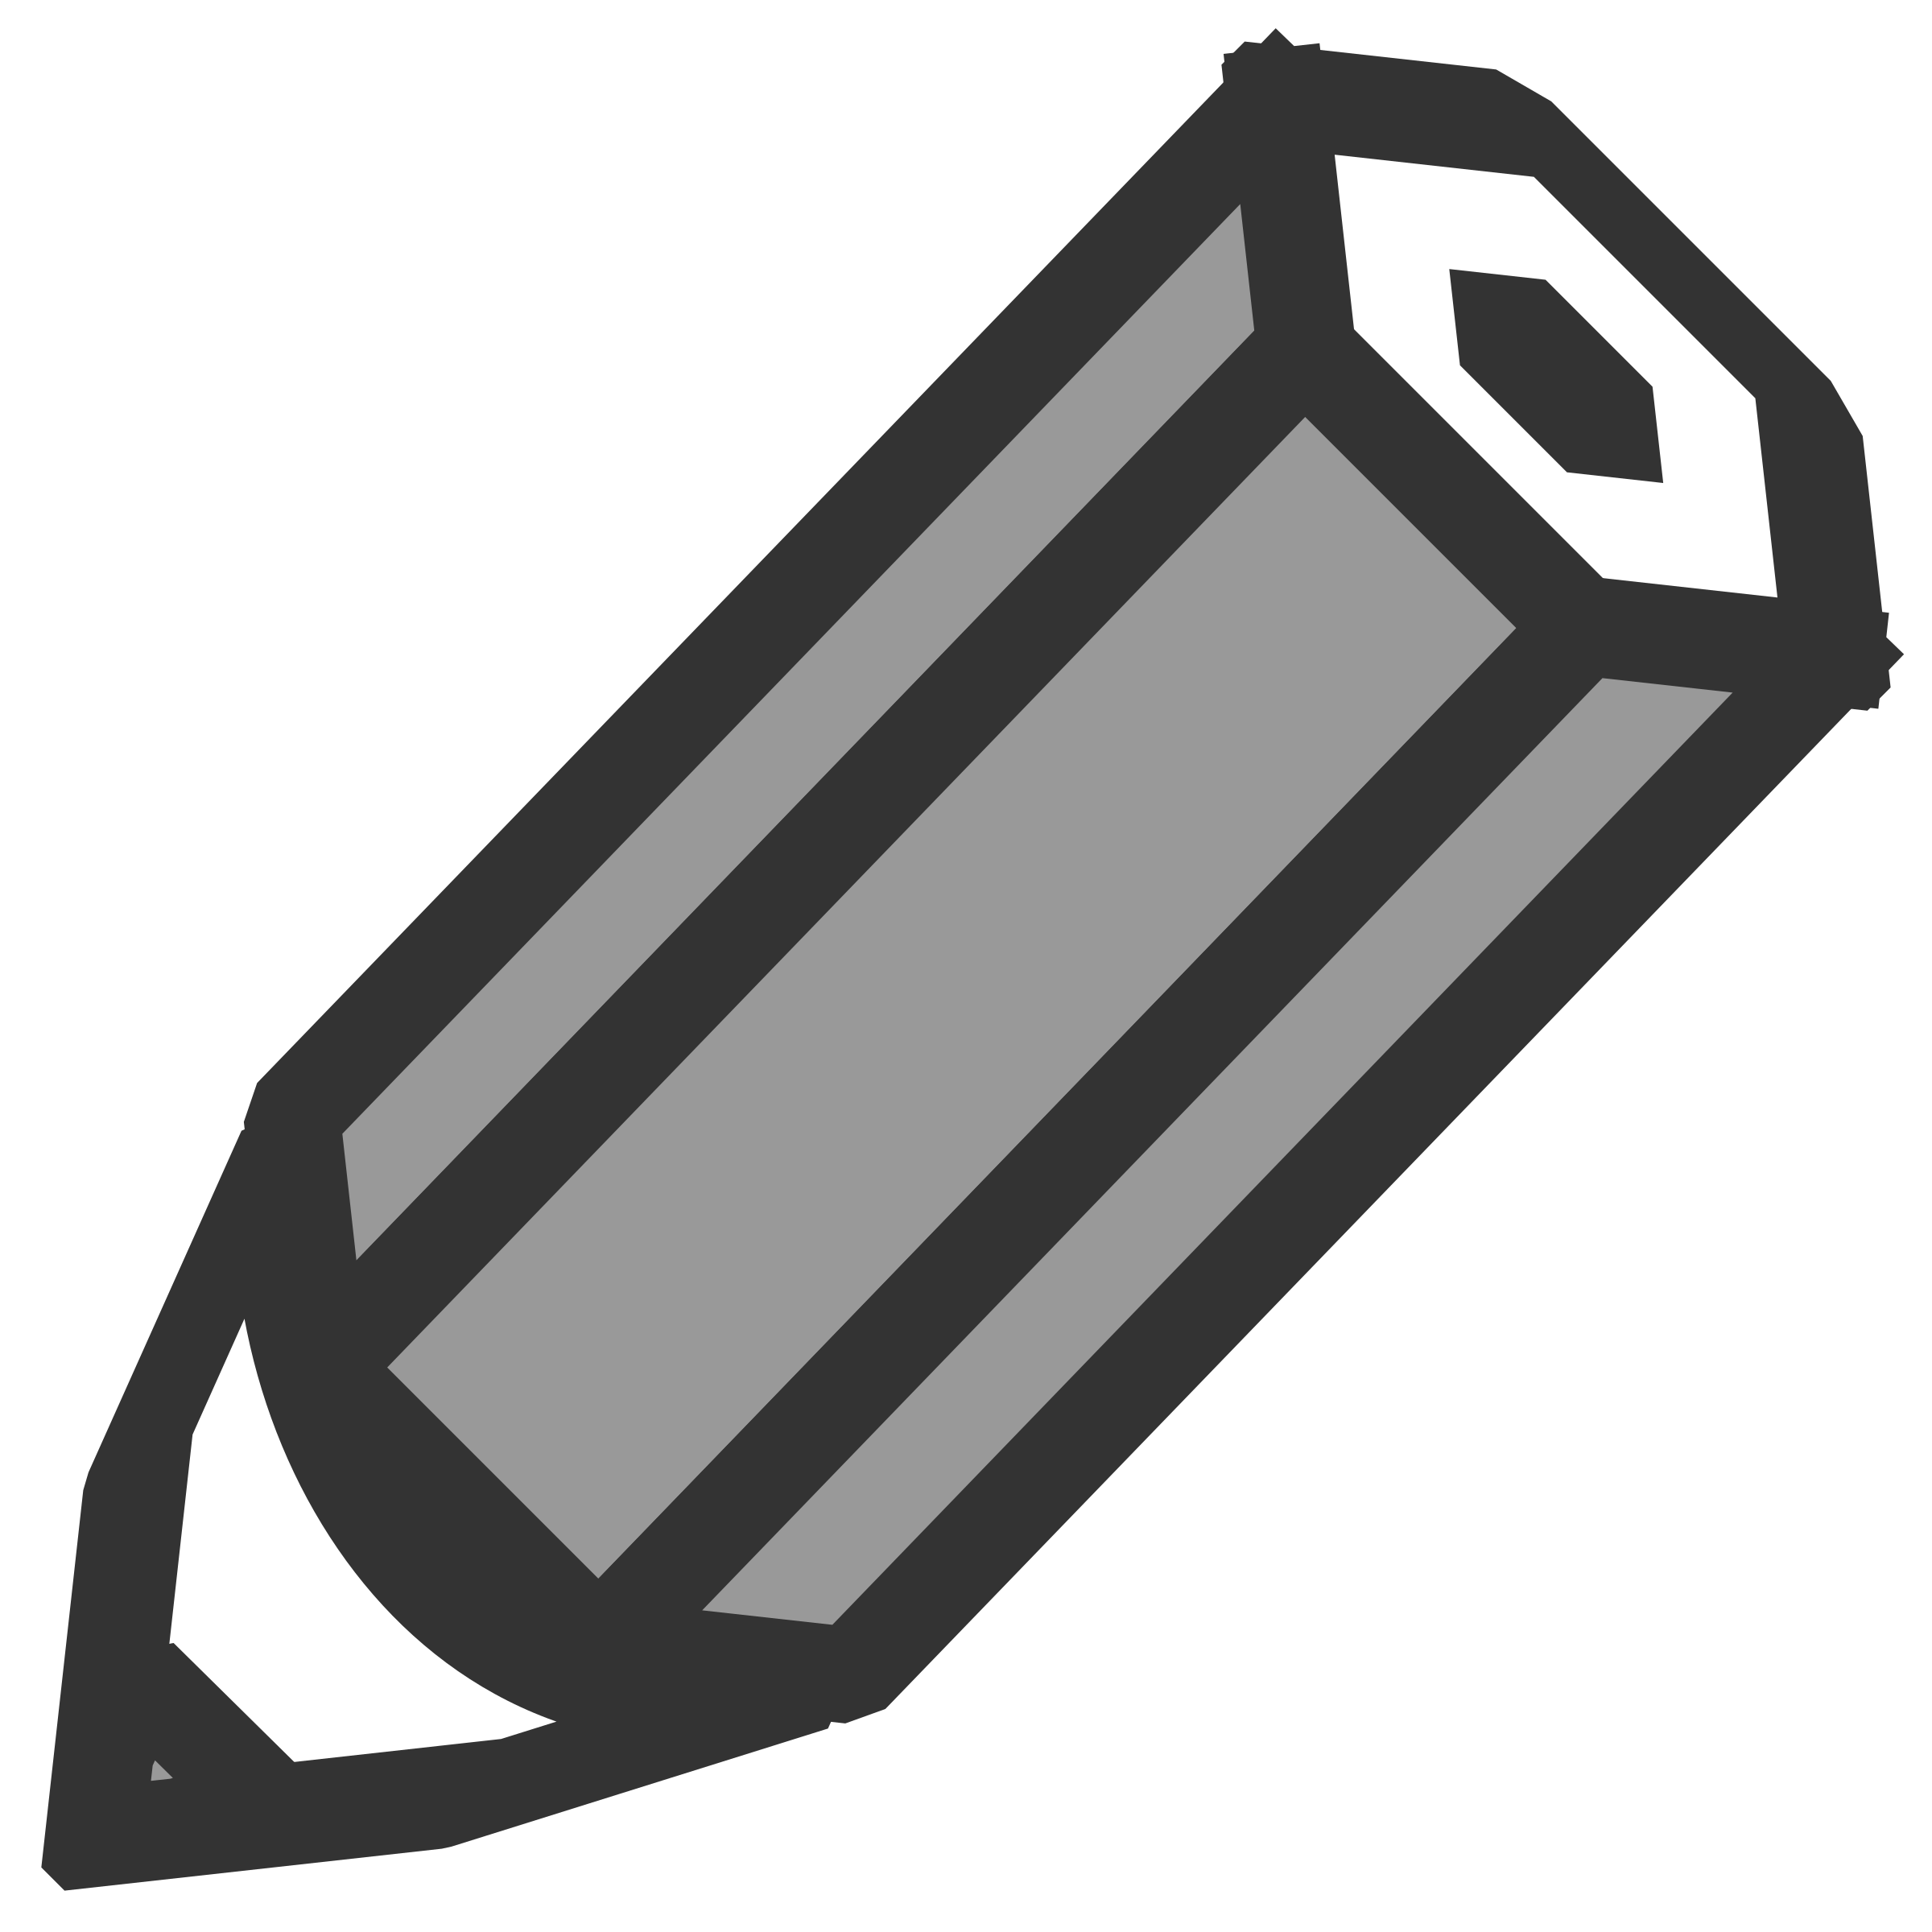 pencil icon by Keistutis